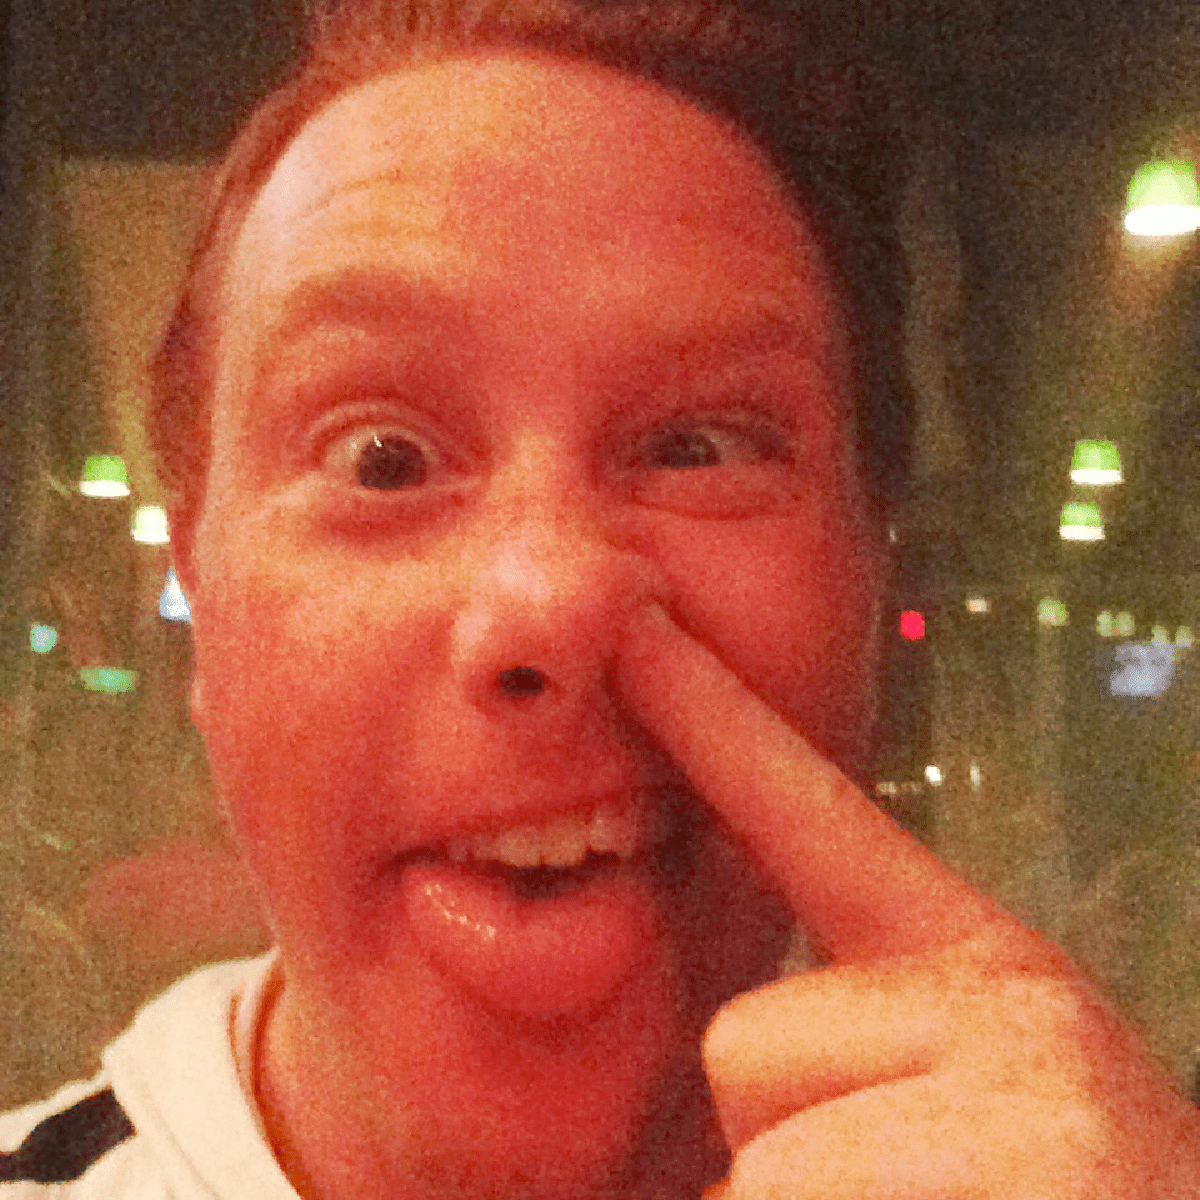 Kenny Siebold as himself, hijacking my phone when I left the dinner table...